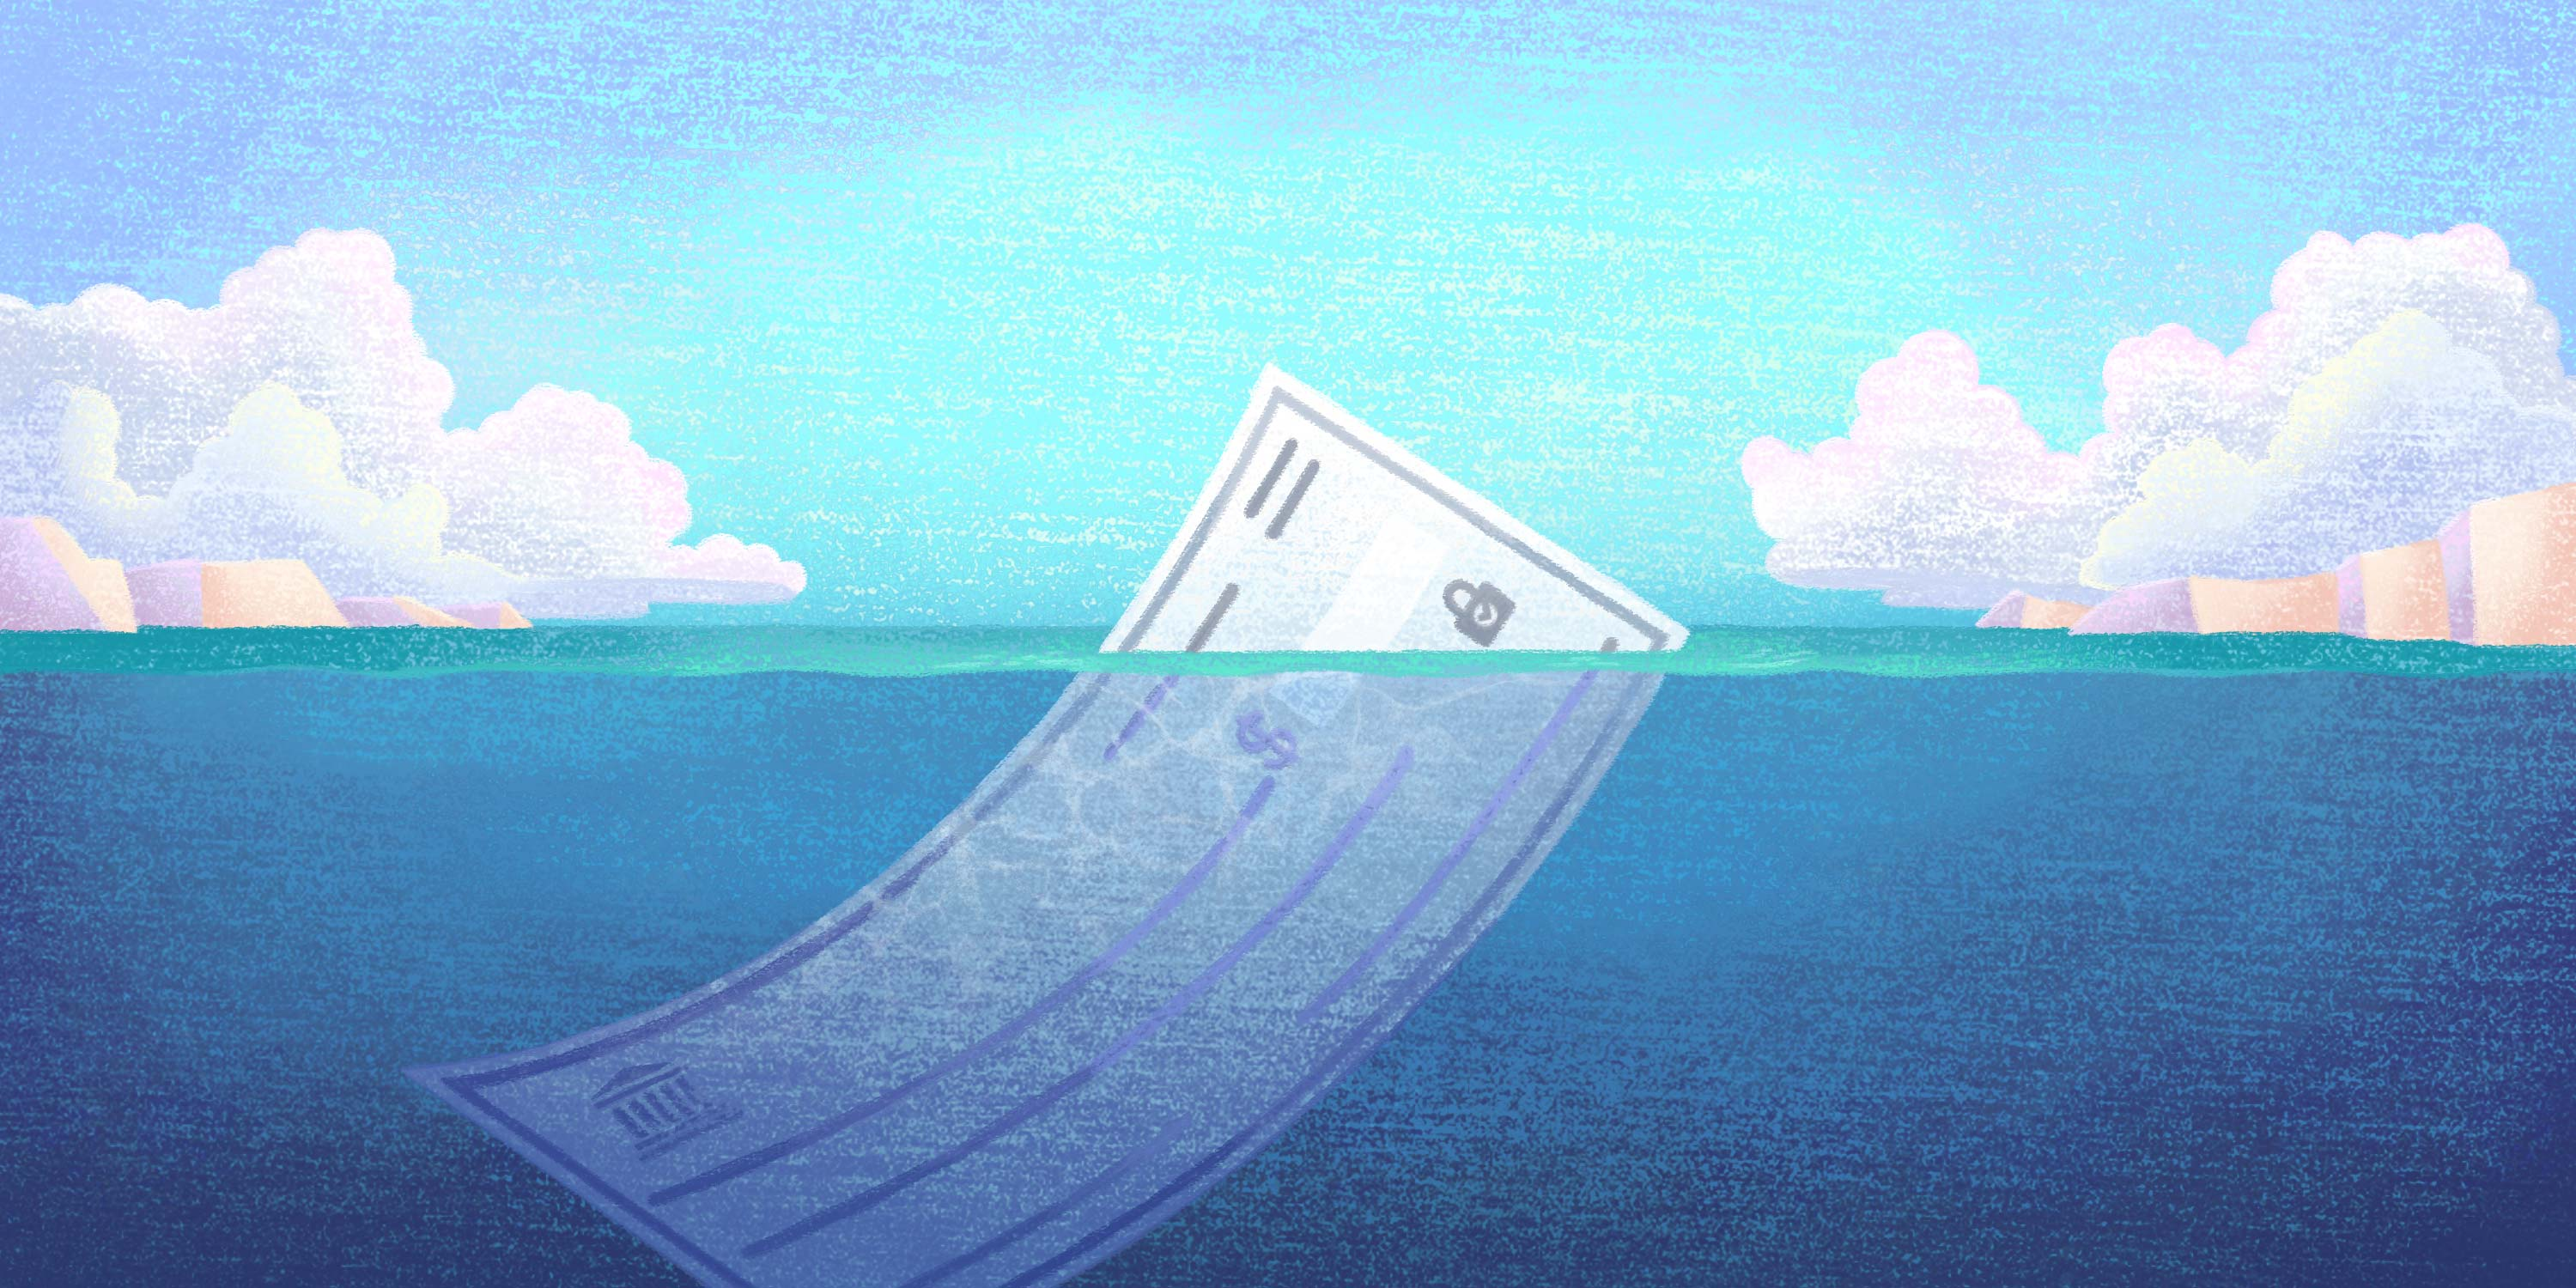 paper check poised to sink an organization like an iceberg in the ocean